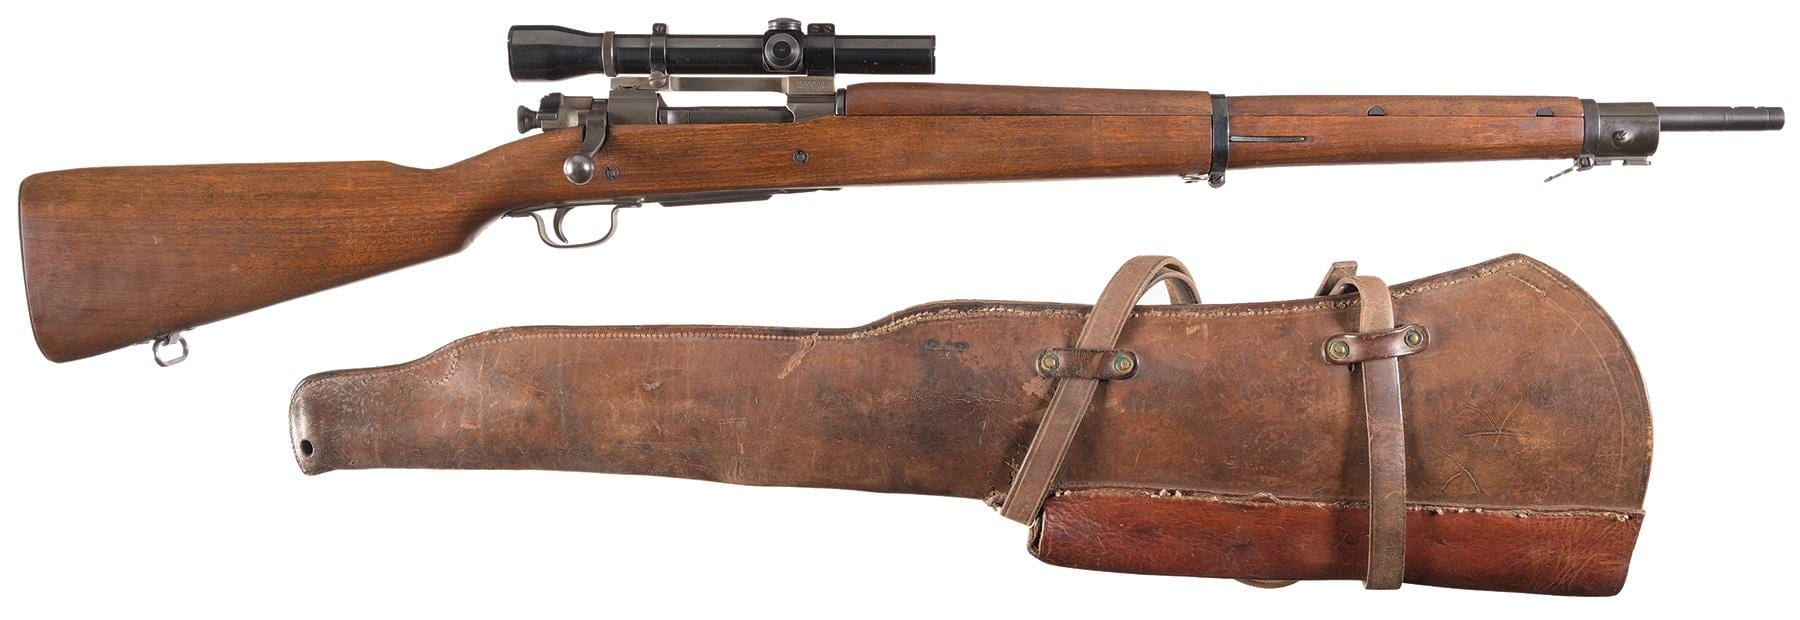 U.S. Remington Model 1903A4 Bolt Action Sniper Rifle with Scope Weaver K3 scope and leather scabbard